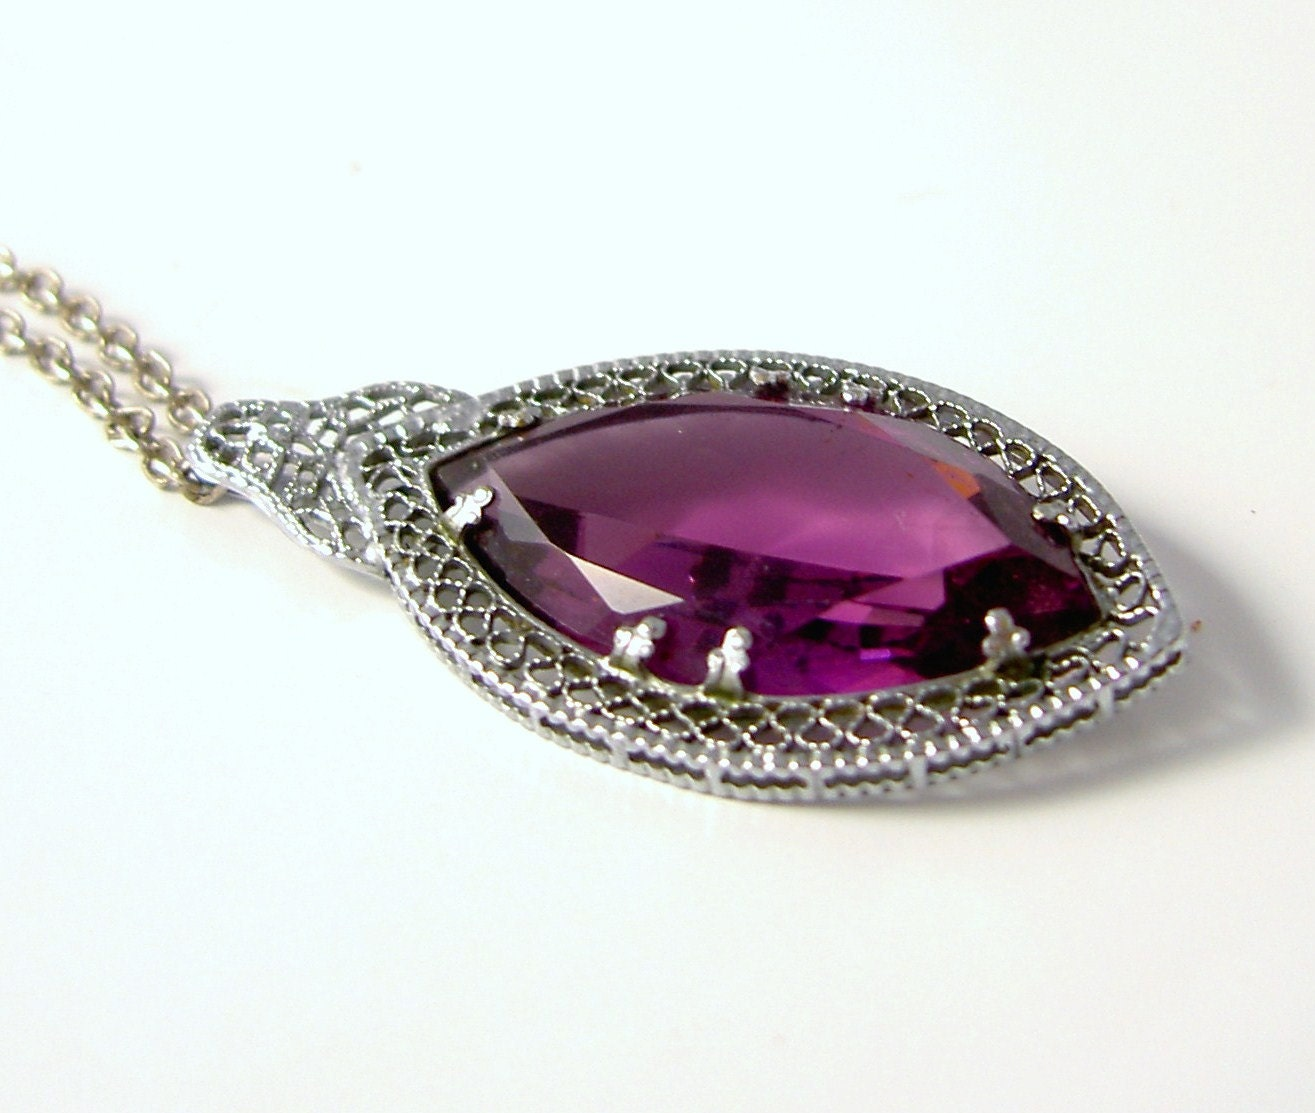 Vintage 1930s Art DECO Silver Amethyst Art Glass Filigree Necklace